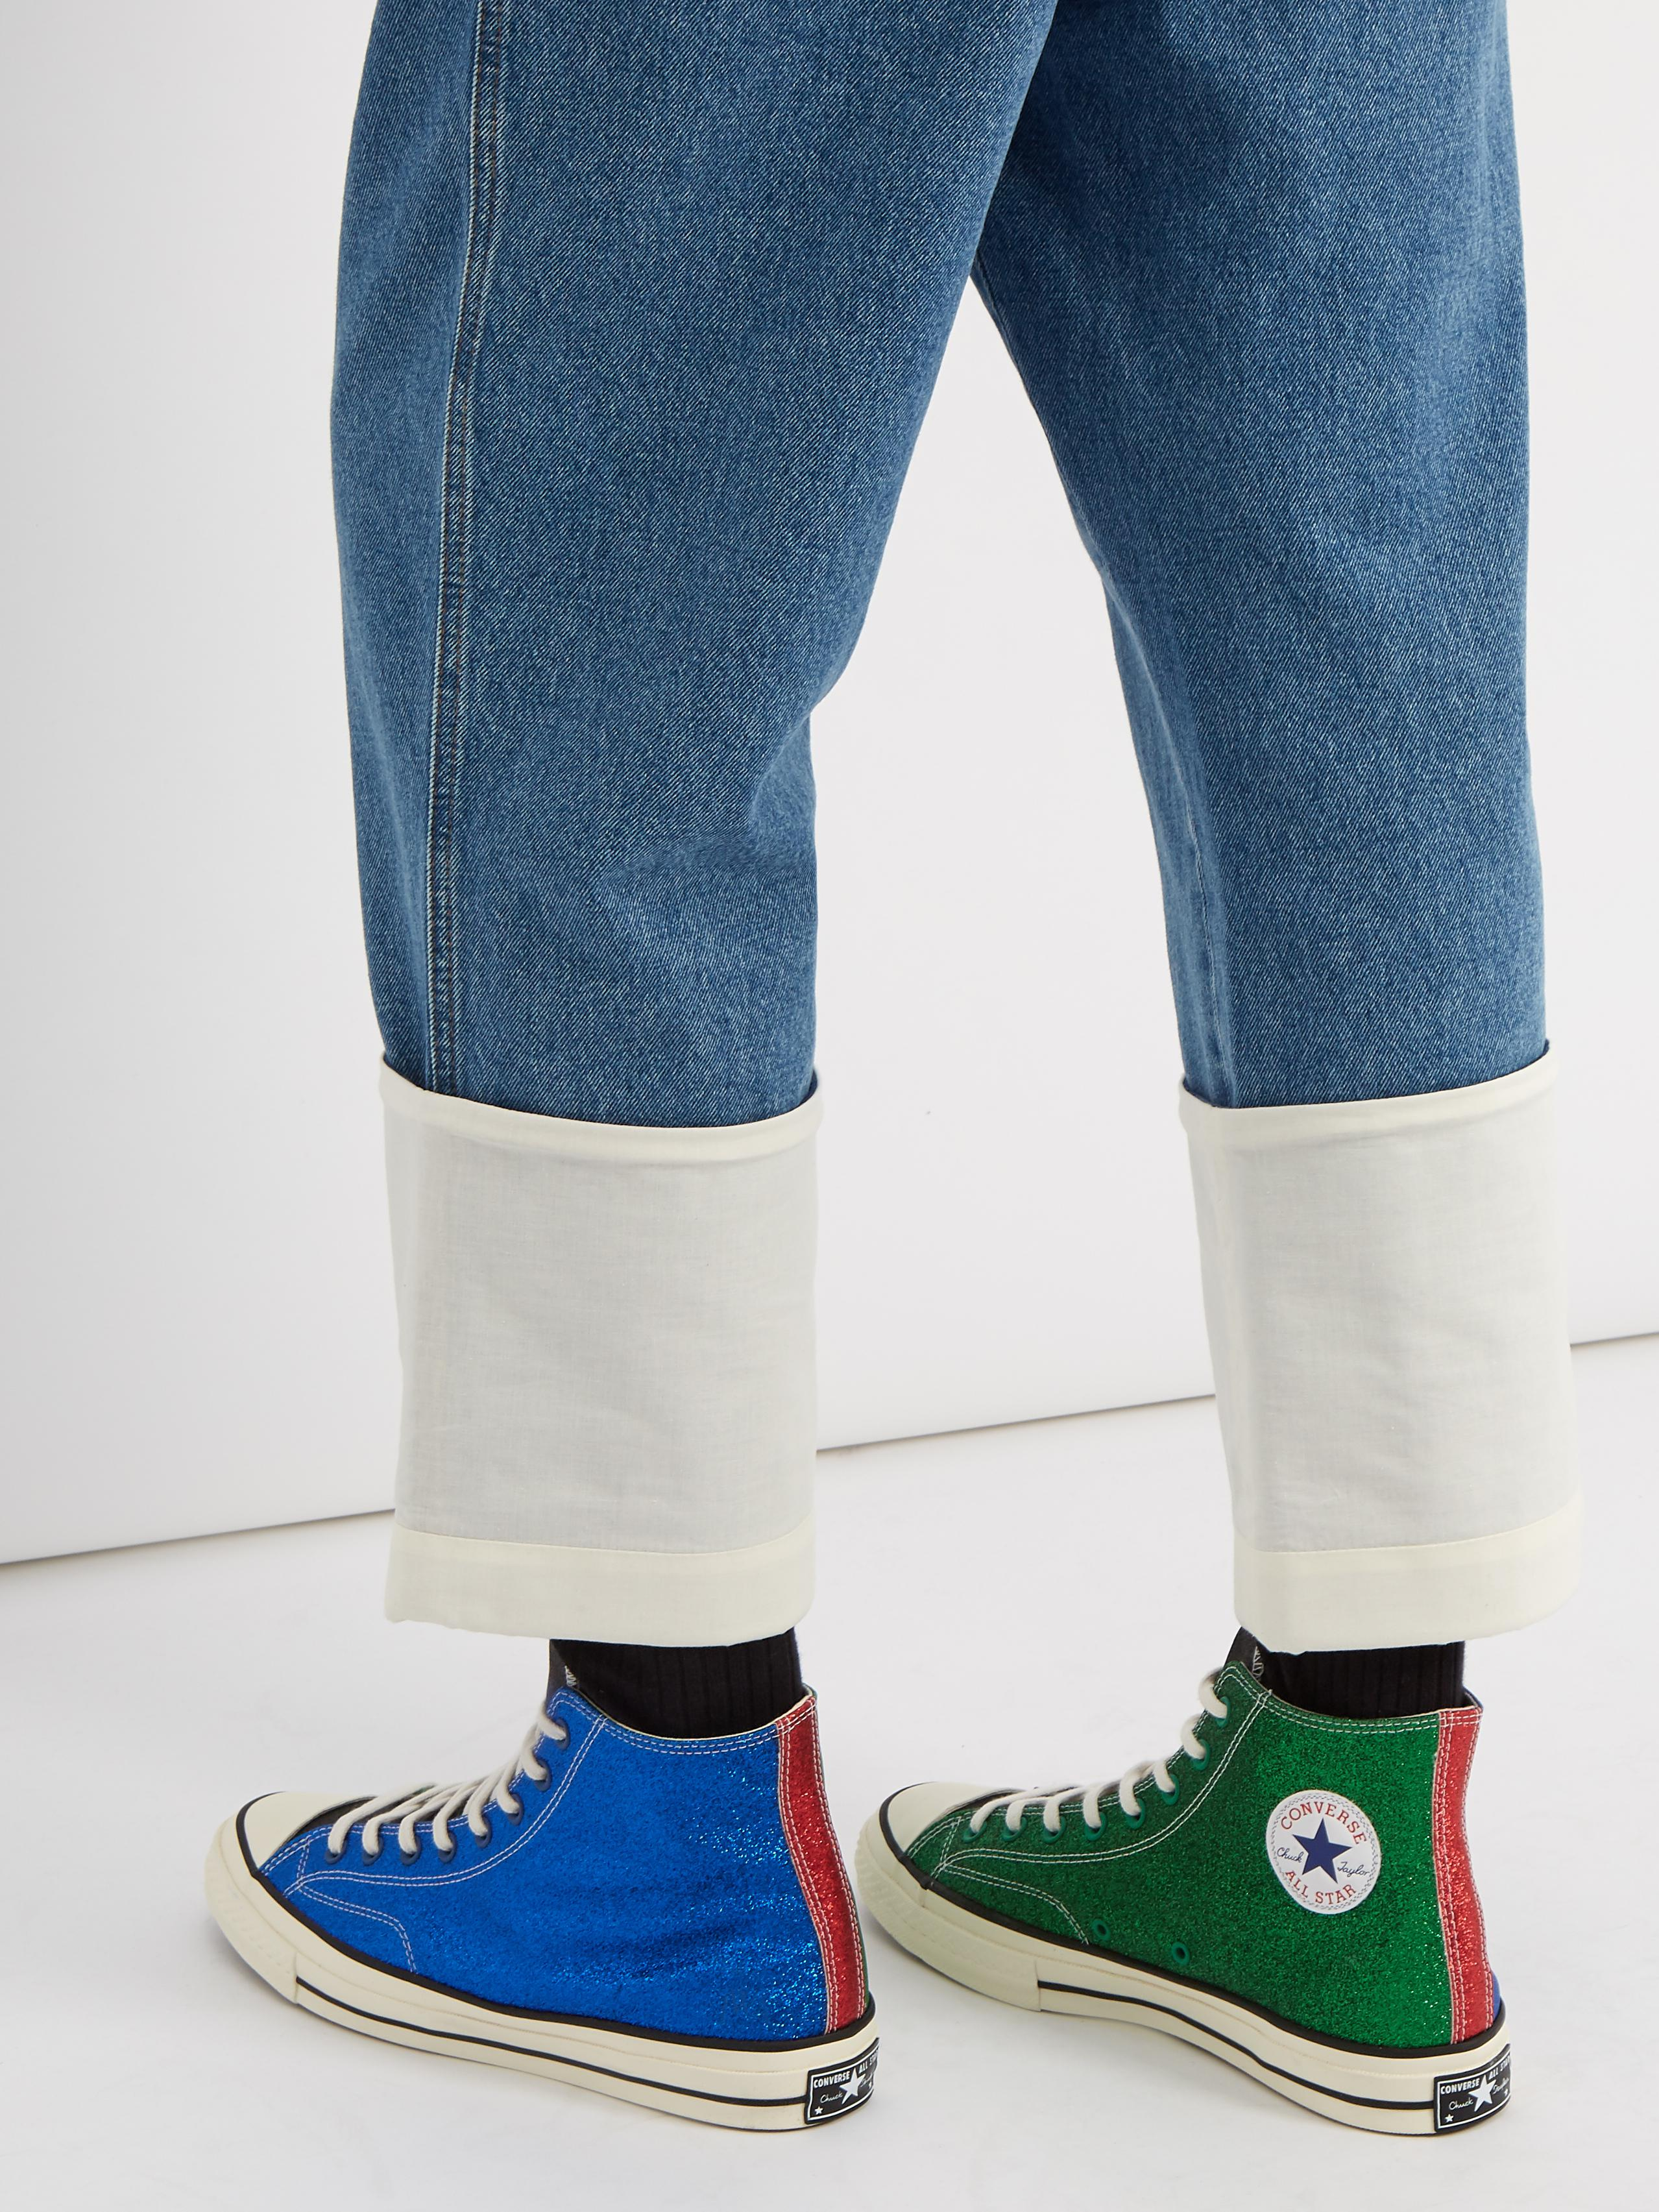 6d3ac84953f1 Lyst - Converse X Jw Anderson Glitter High-top Trainers in Blue for Men